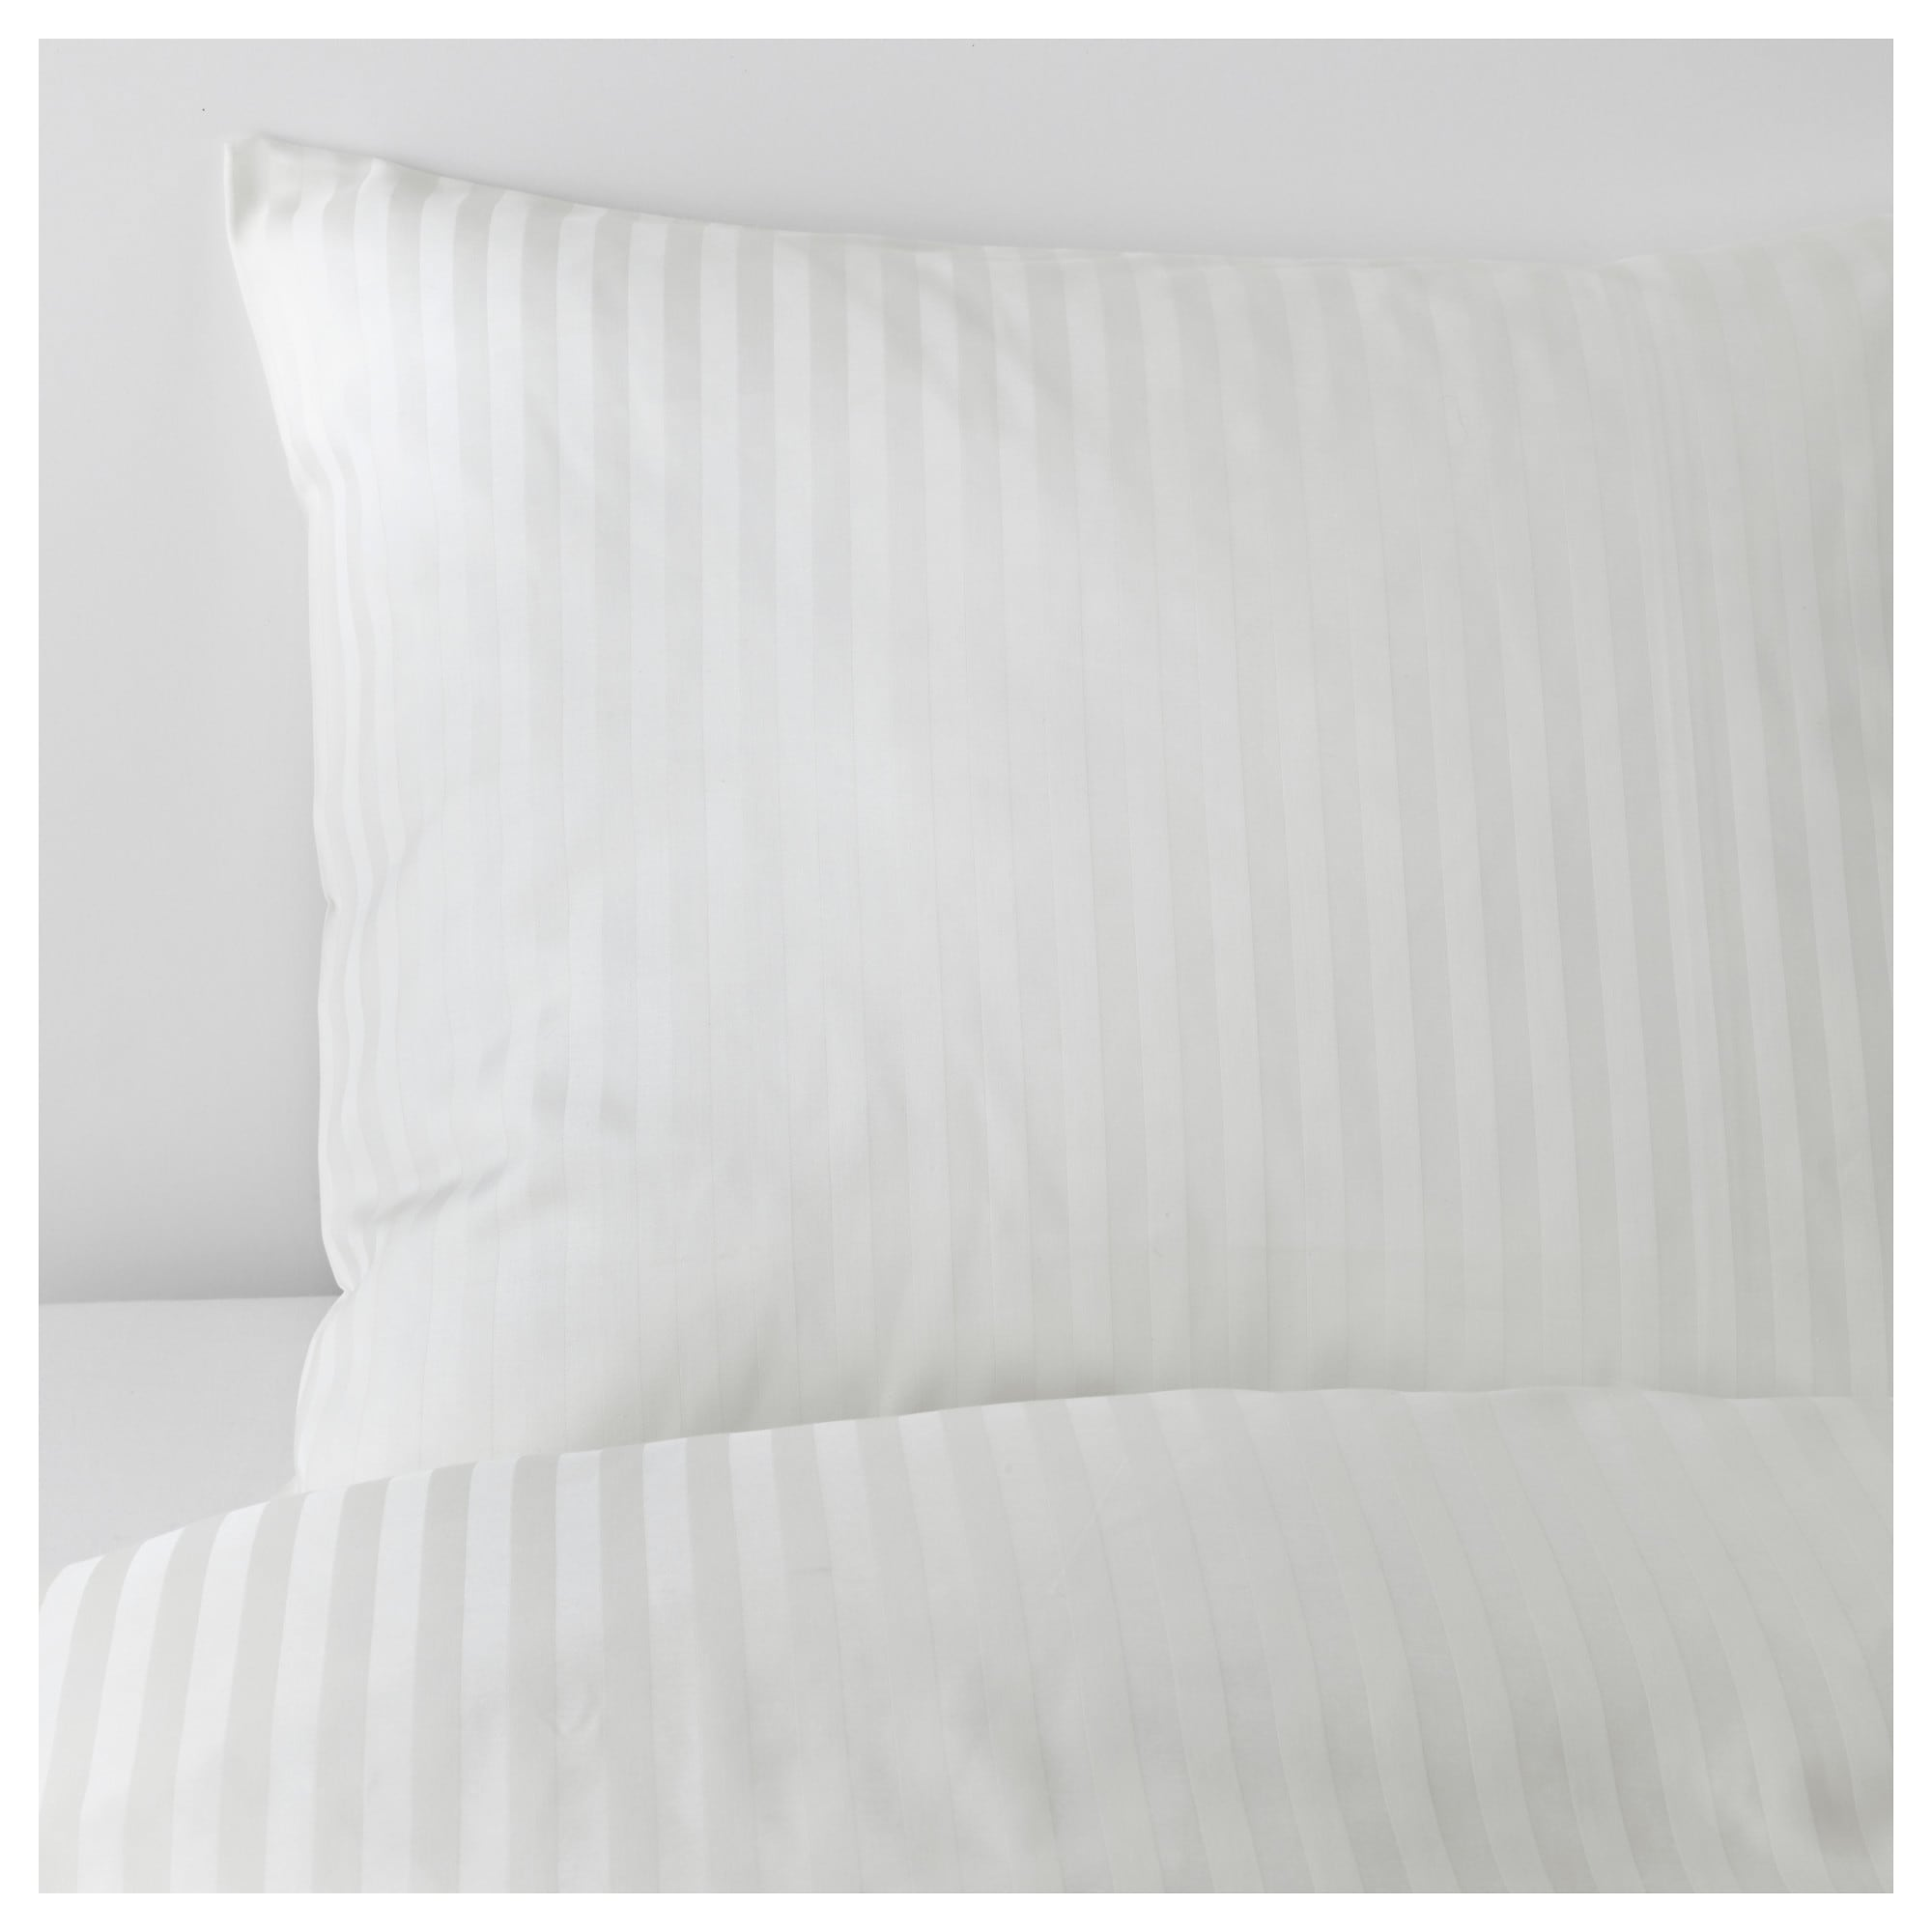 NATTJASMIN duvet cover and pillowcase(s), white Thread count: 310 /inch